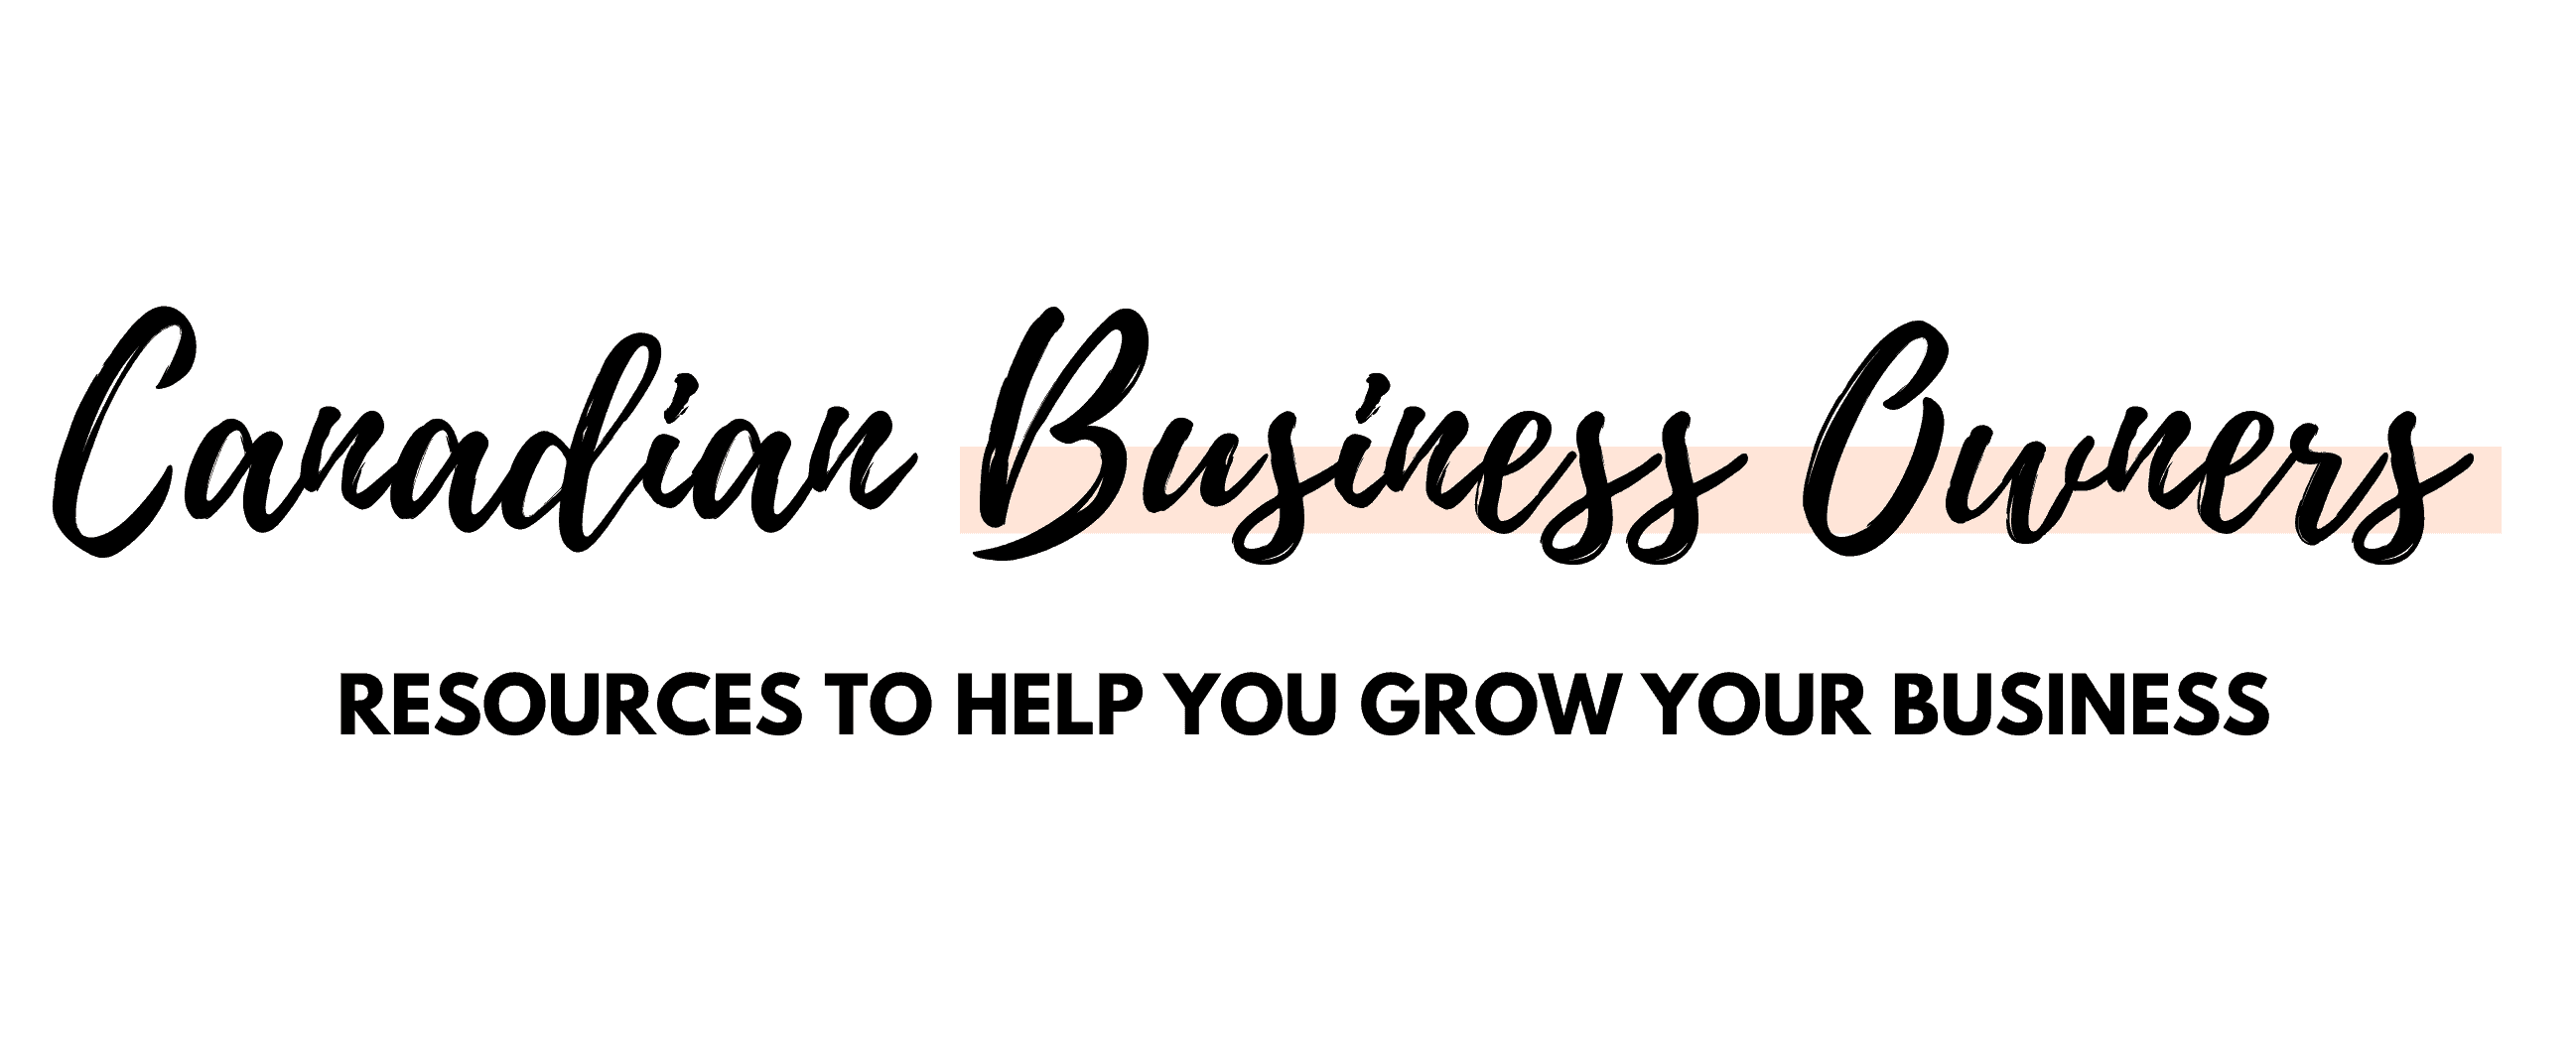 Canadian business owners